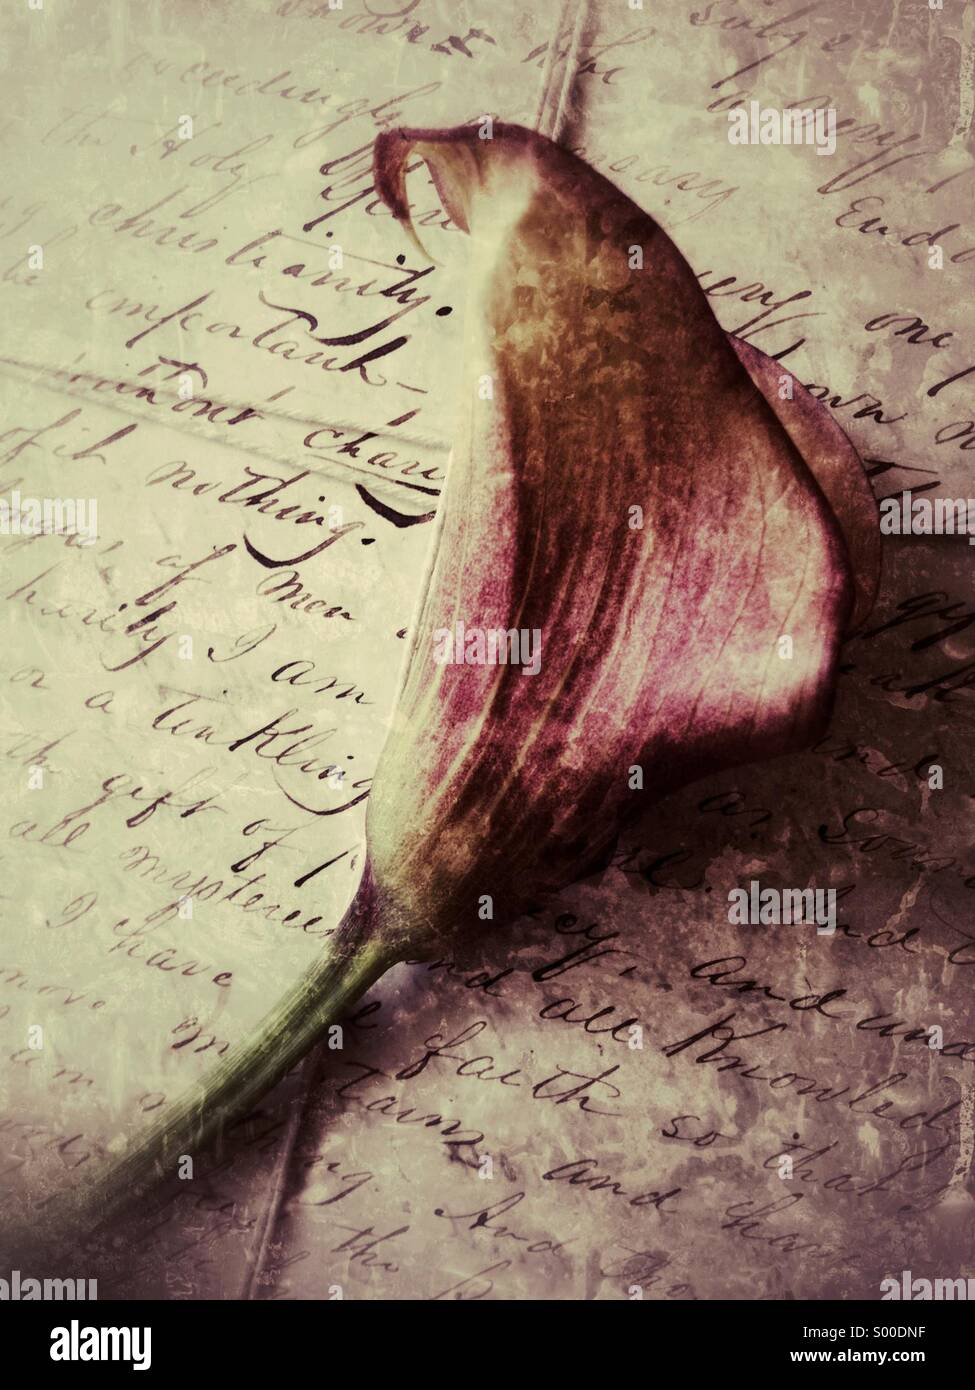 Calla lily on old letters - Stock Image